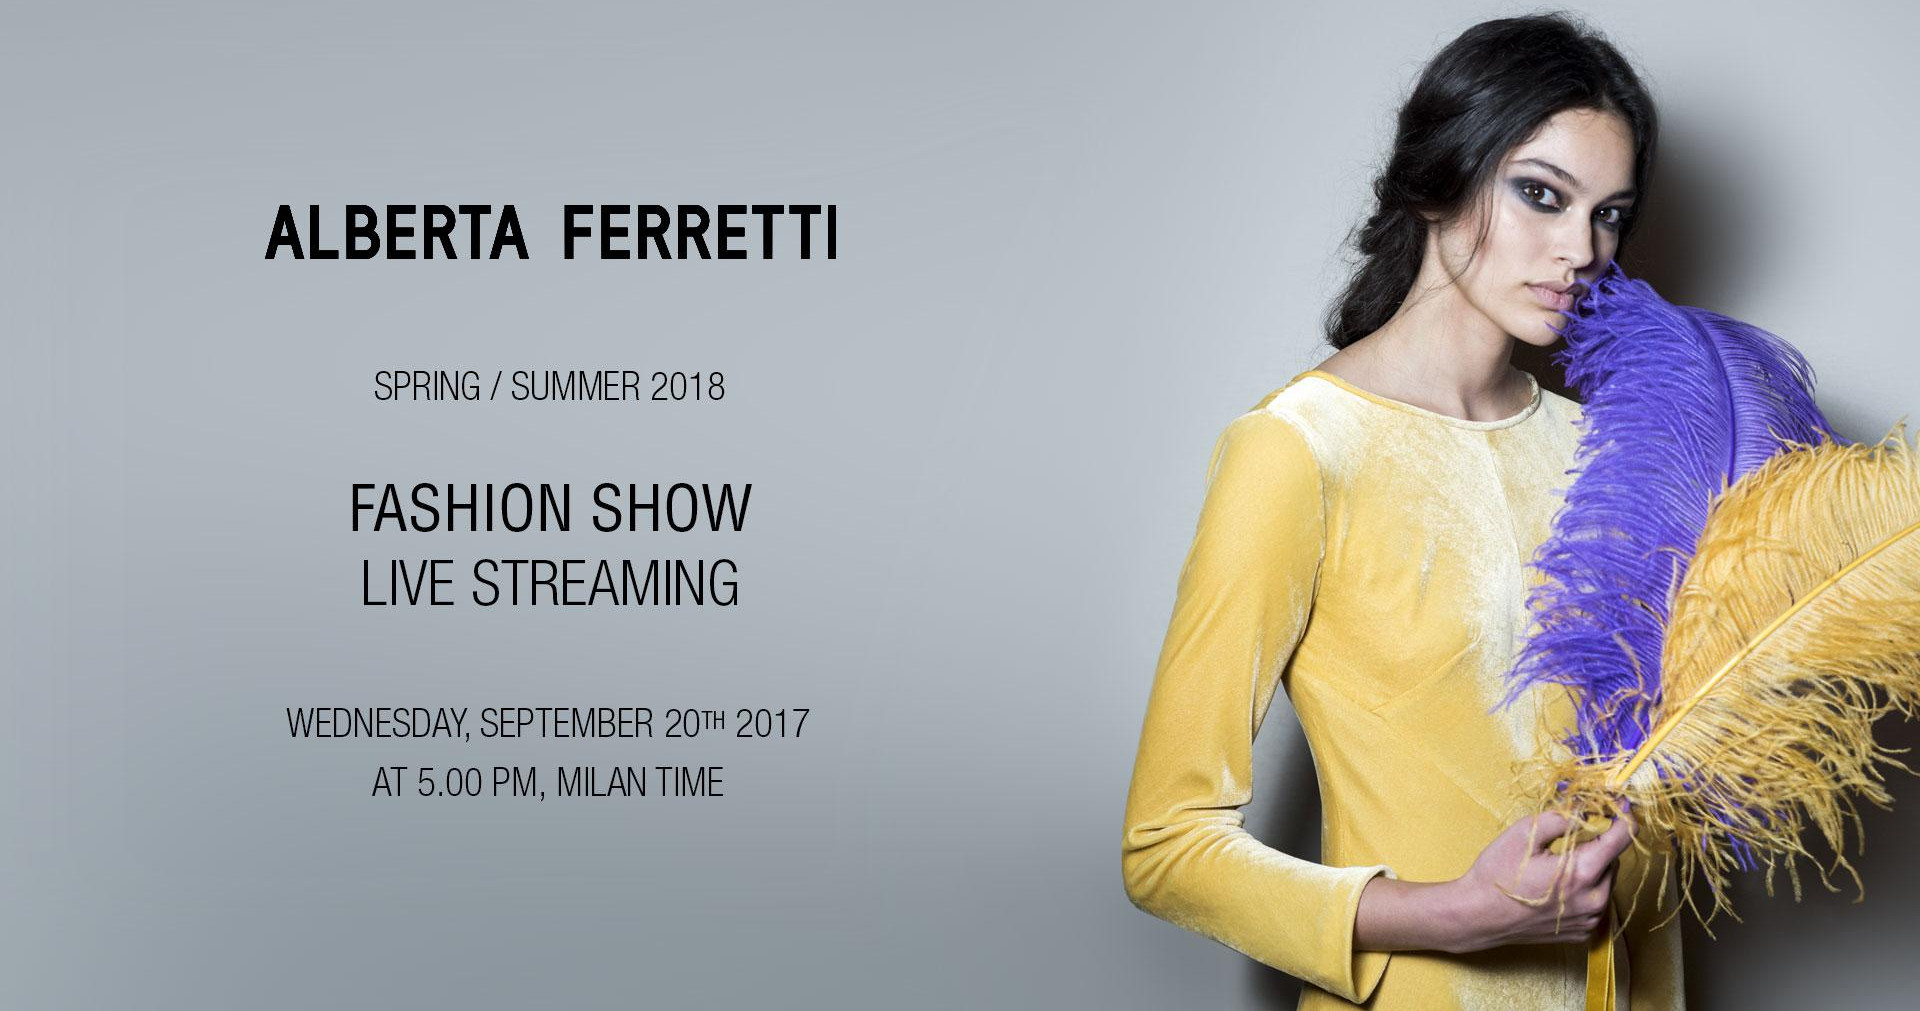 Alberta Ferretti Spring Summer 2018 Fashion Show Live Streaming Milan